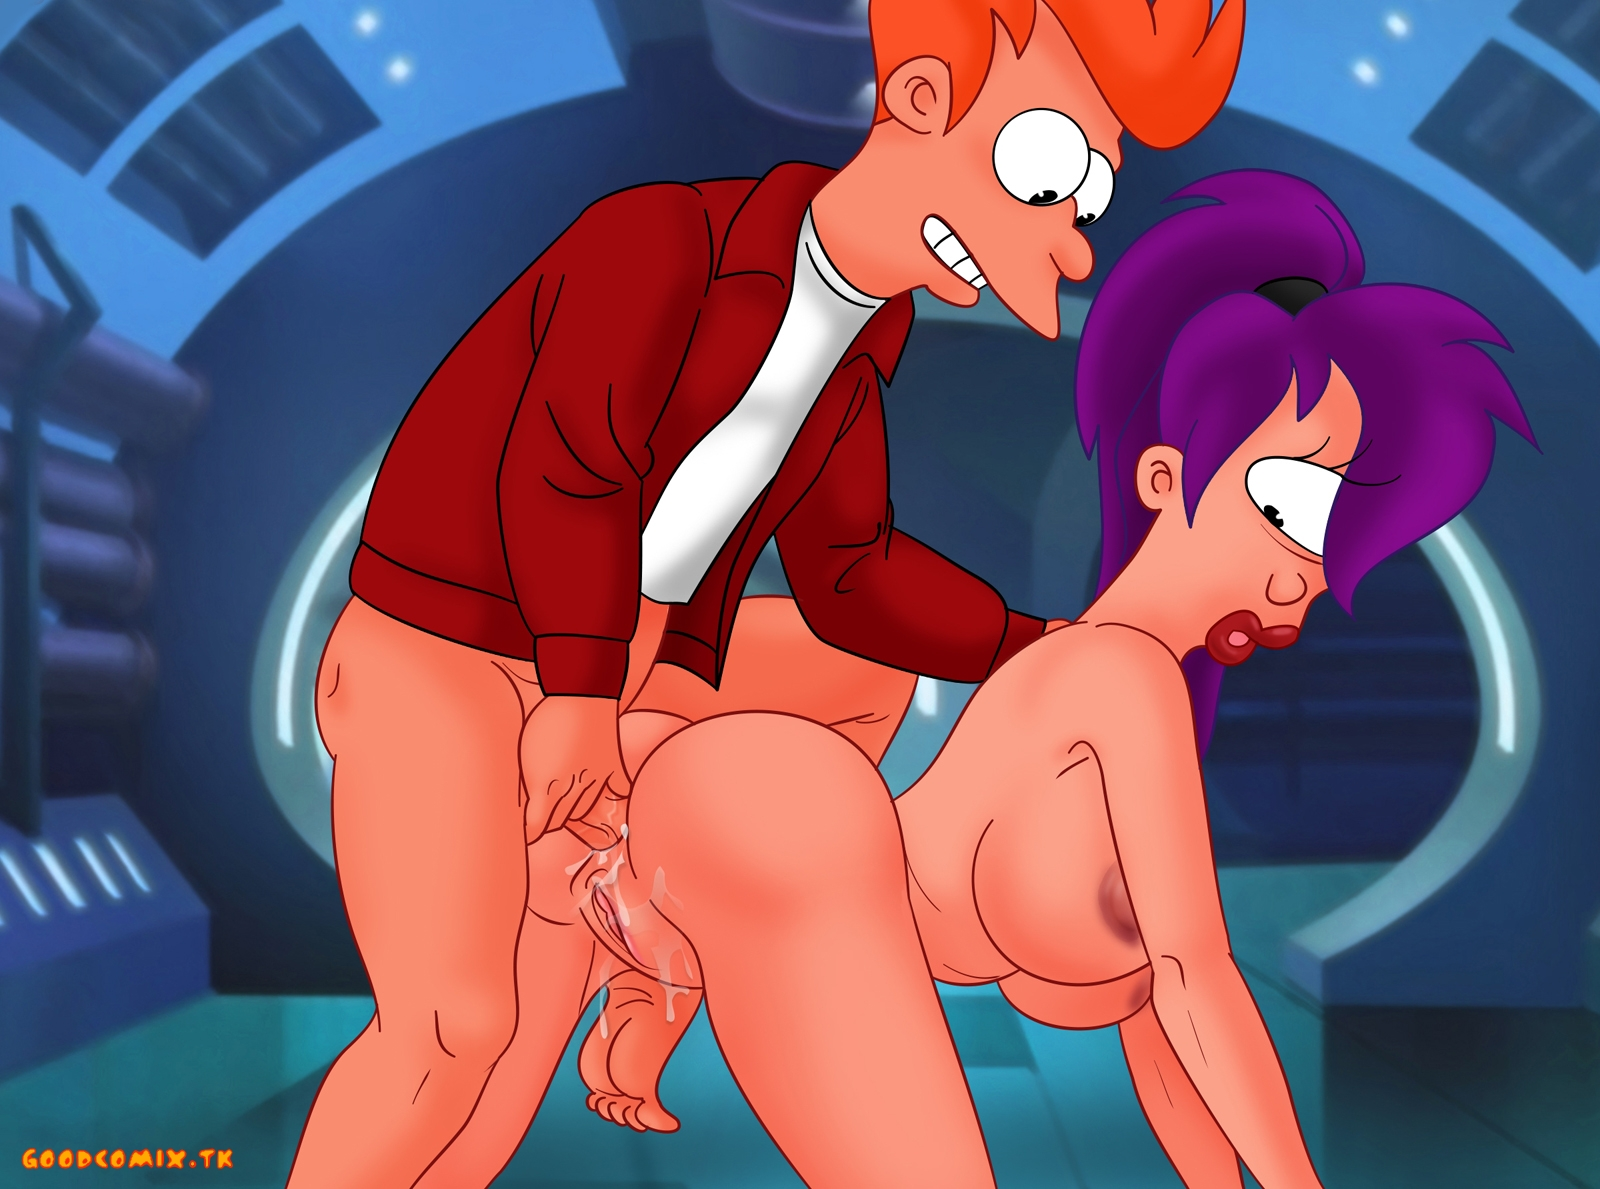 futurama movie porn Dec 2008  Anonymous3: FUTURAMA THE MOVIE: Bender's Game  there's never enough  porn of tha industrial queen MOM from the show tho, they .